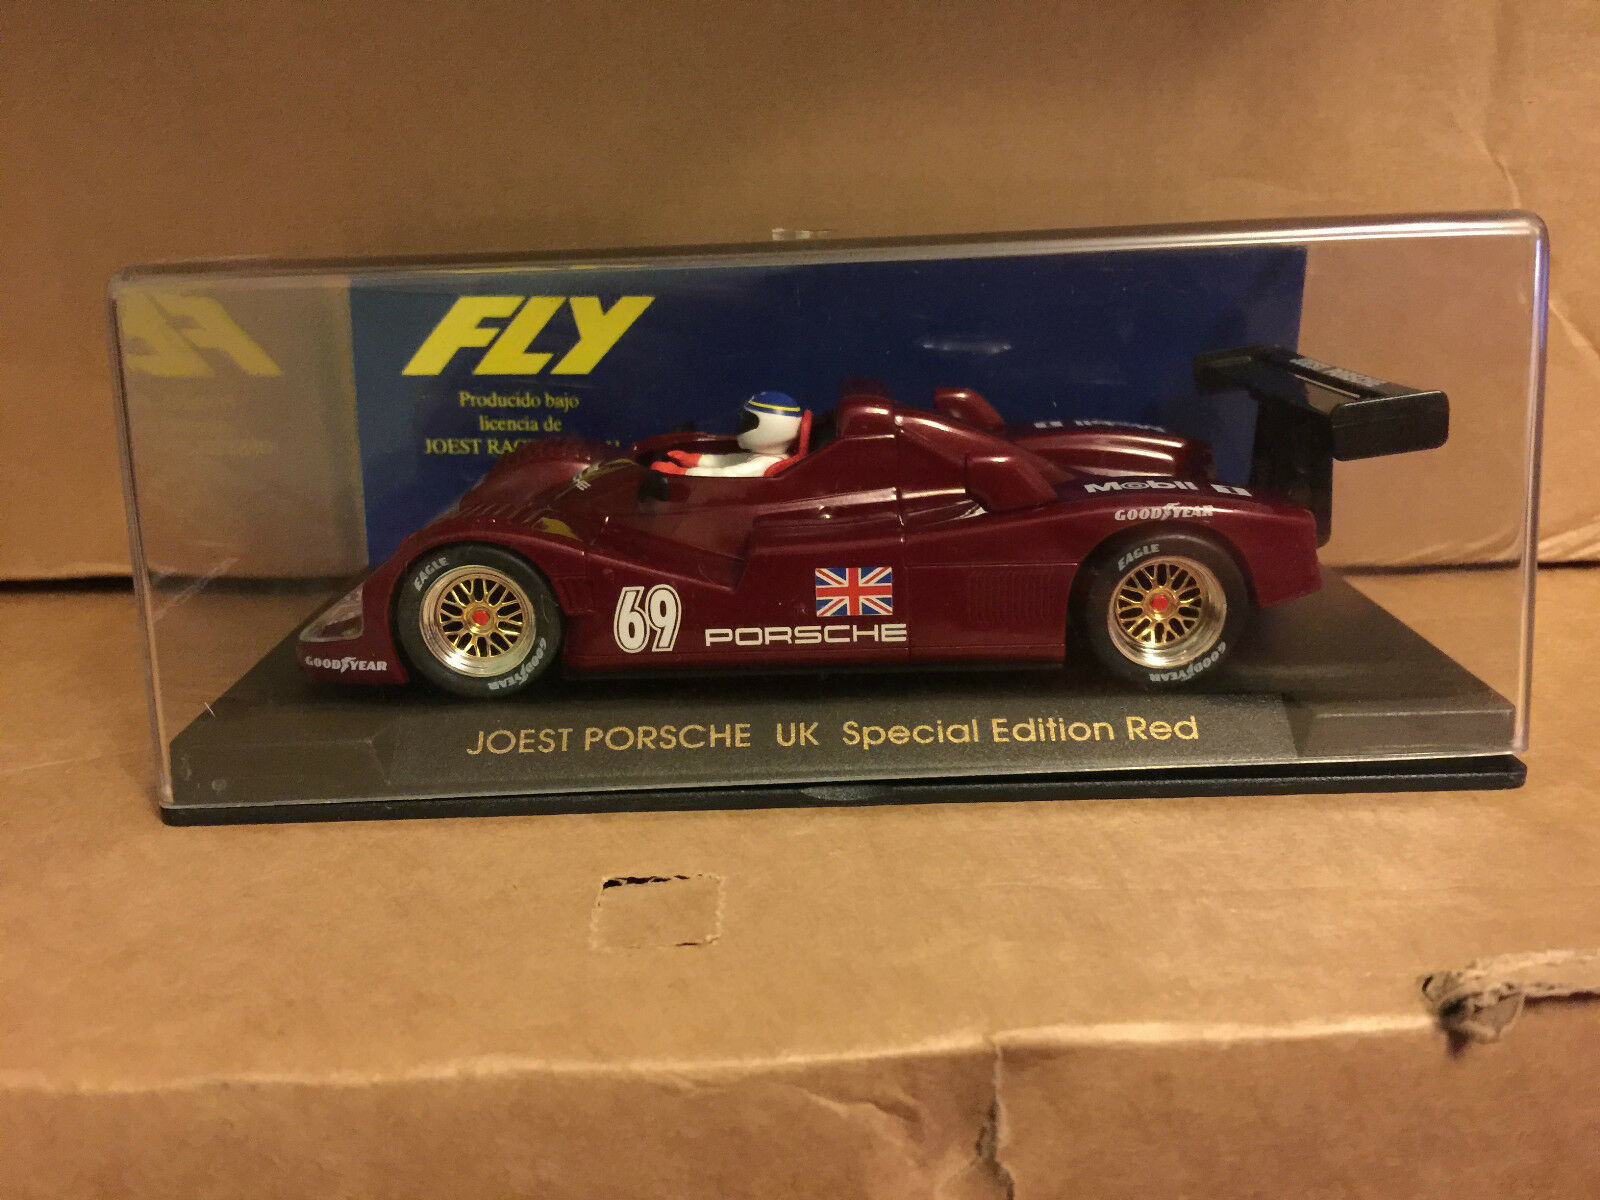 M B FLYCAR PORSCHE JOEST RED  UK SPECIAL LIMITED EDITION REF E41